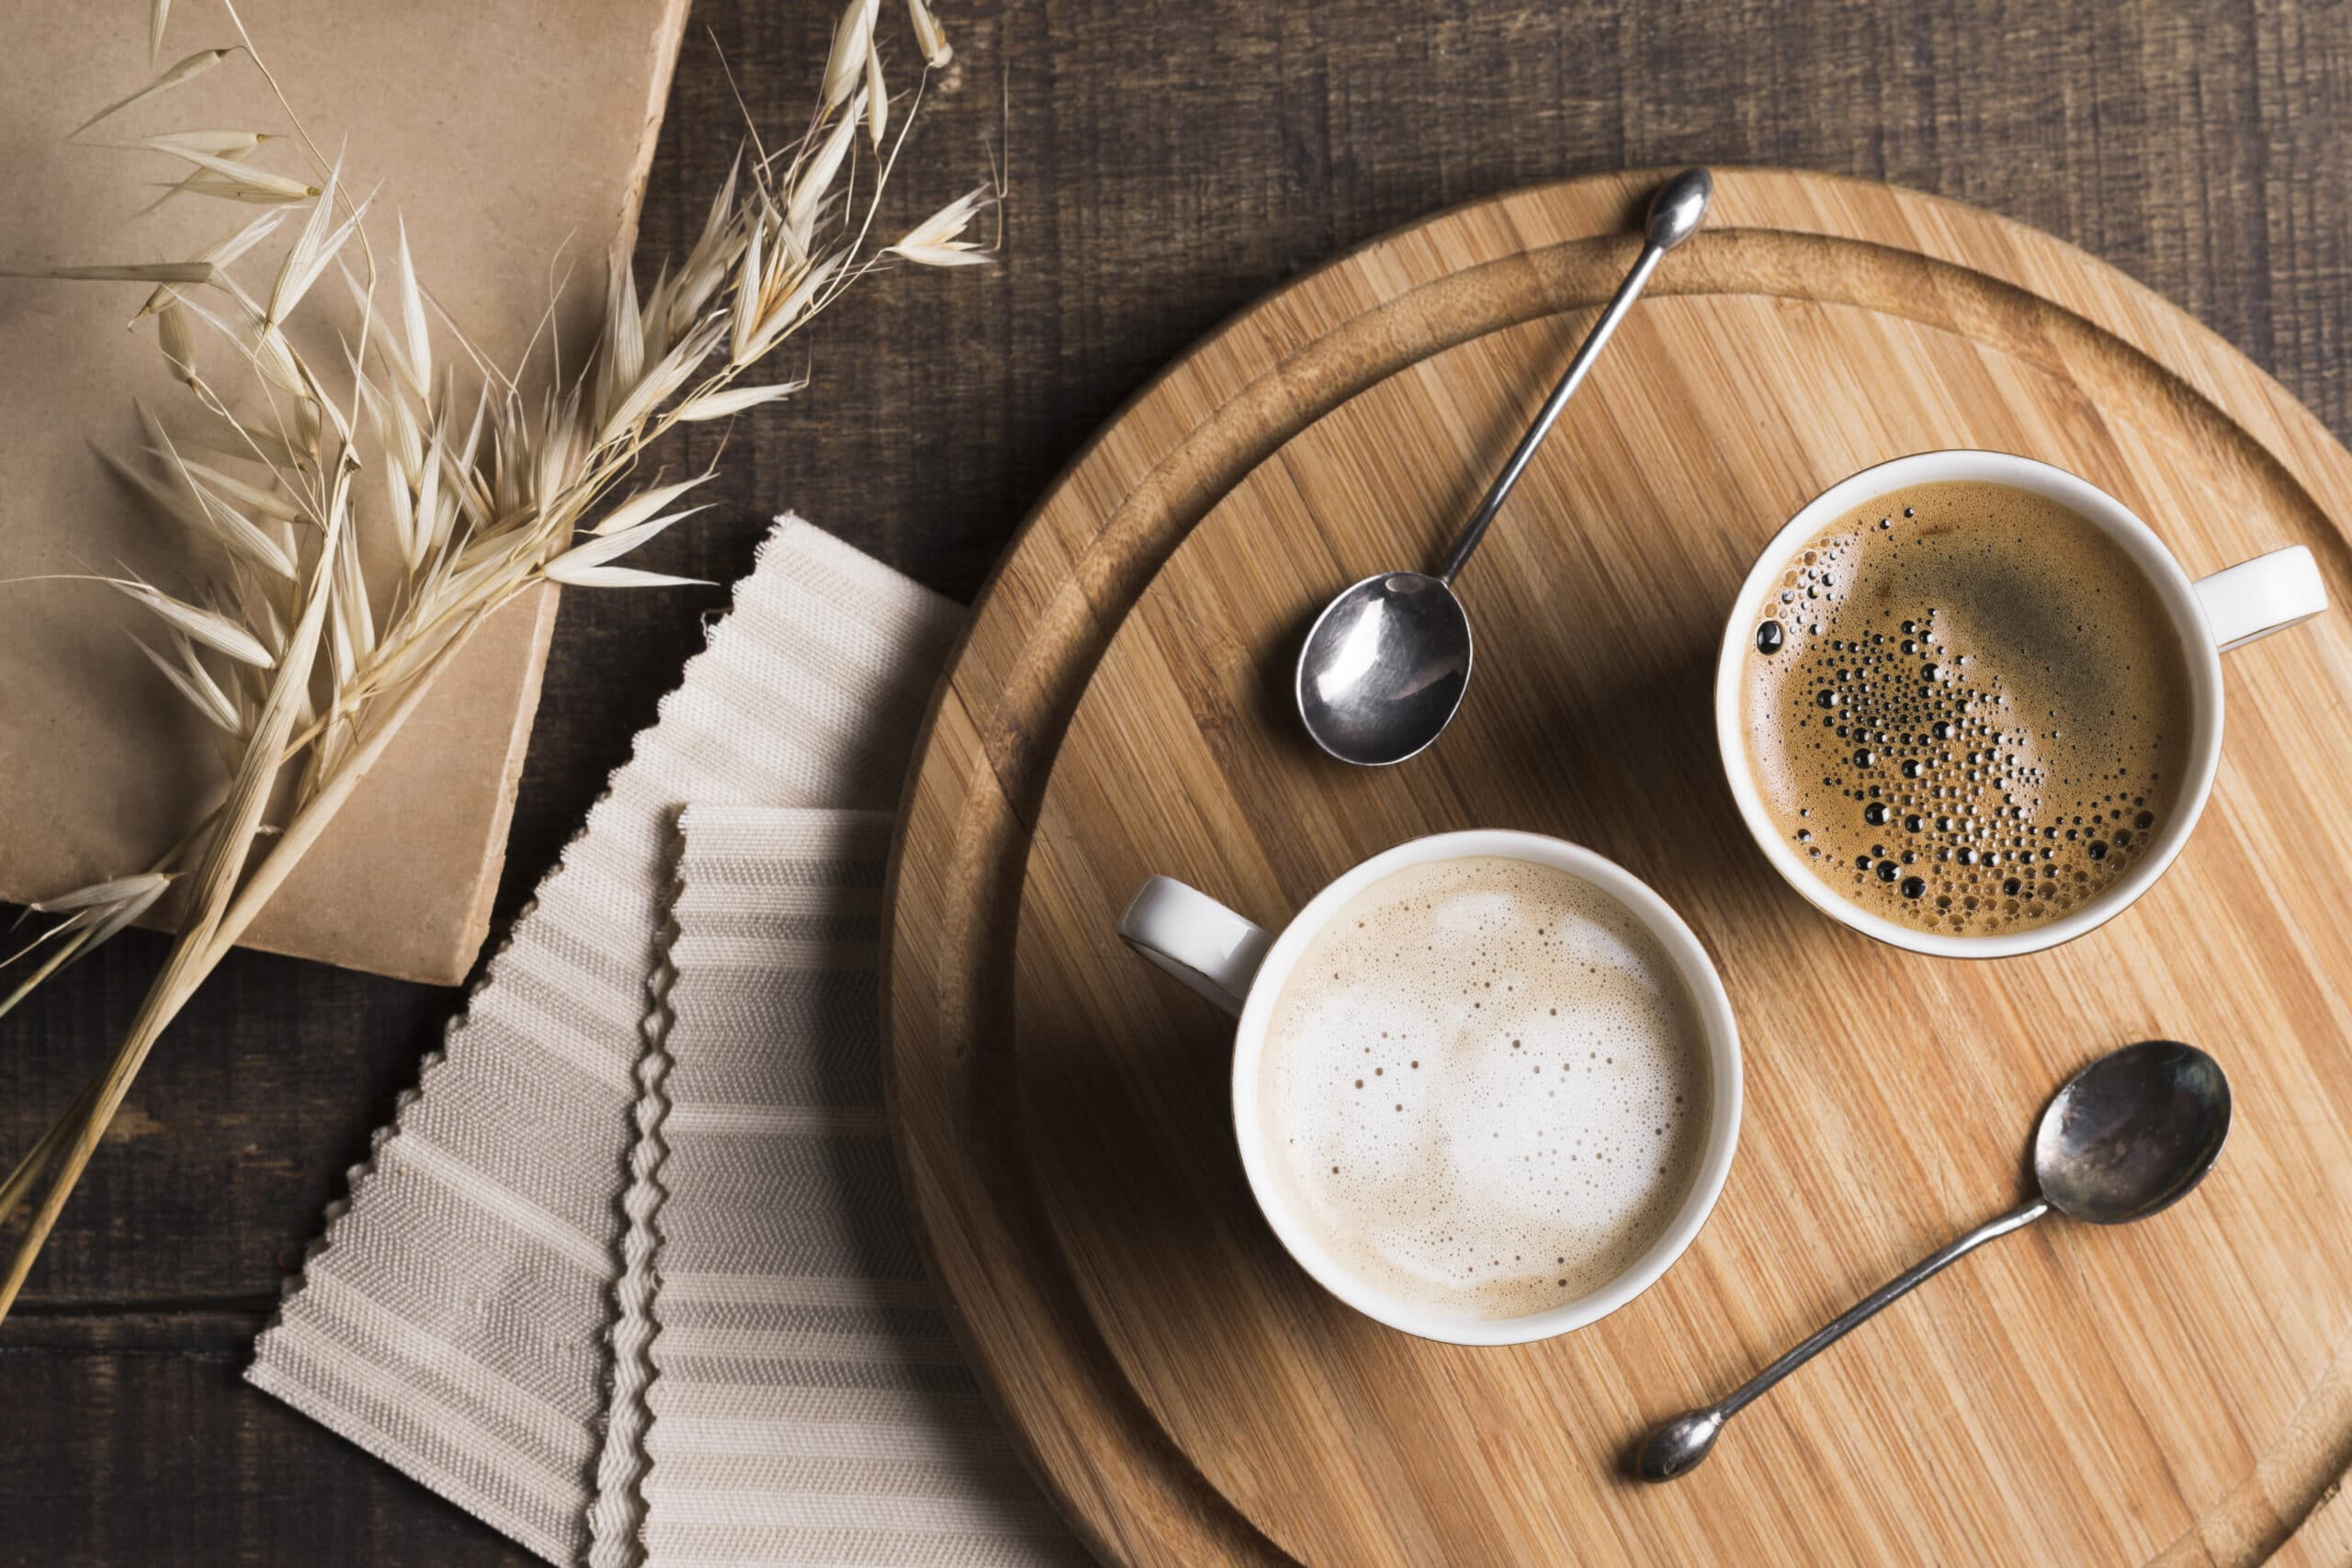 top-view-coffee-latte-white-mugs-wooden-board